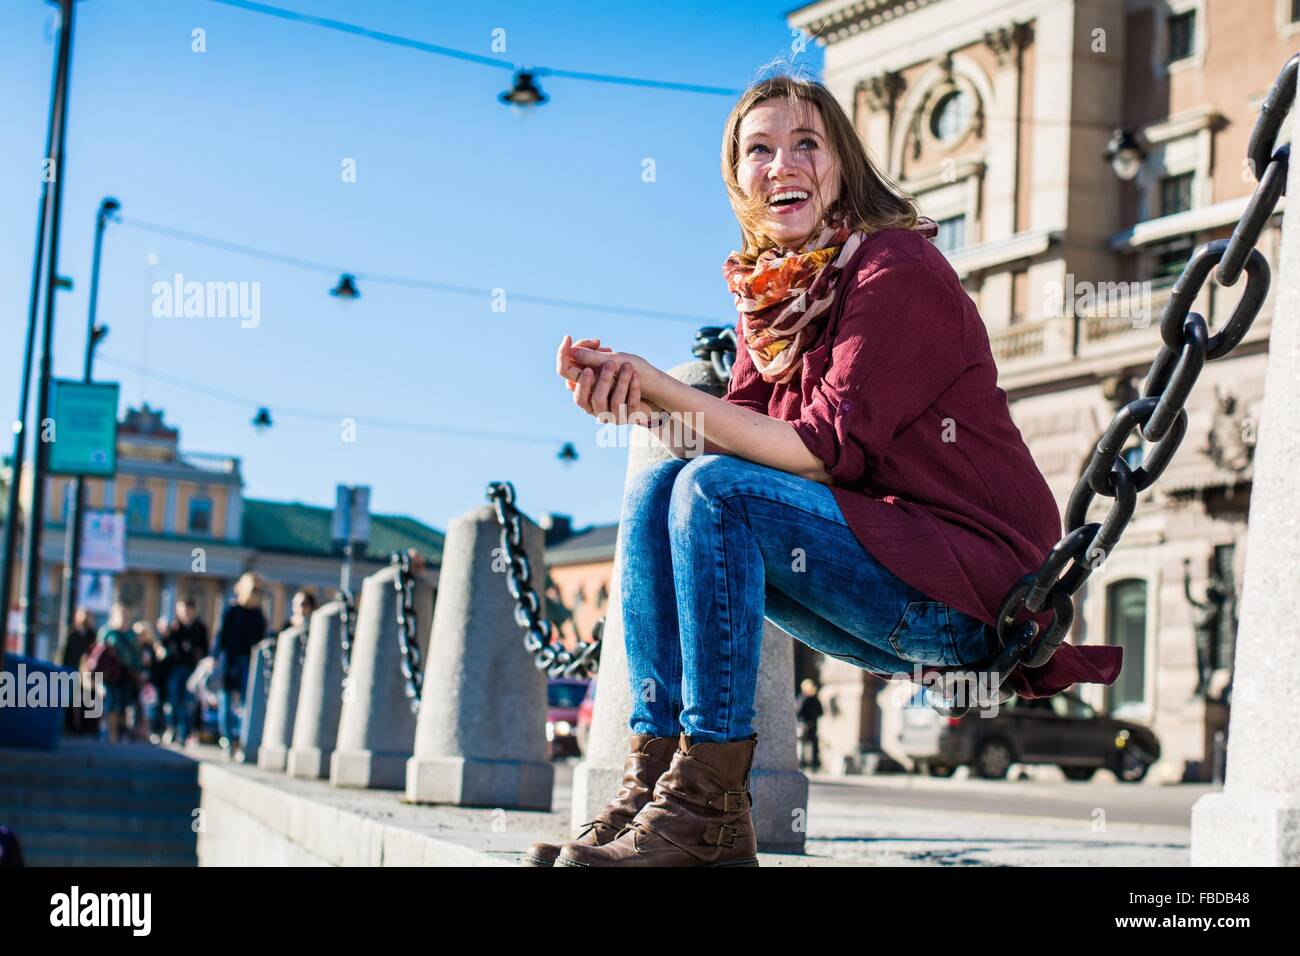 Young Woman Sitting On Chain At Sidewalk - Stock Image